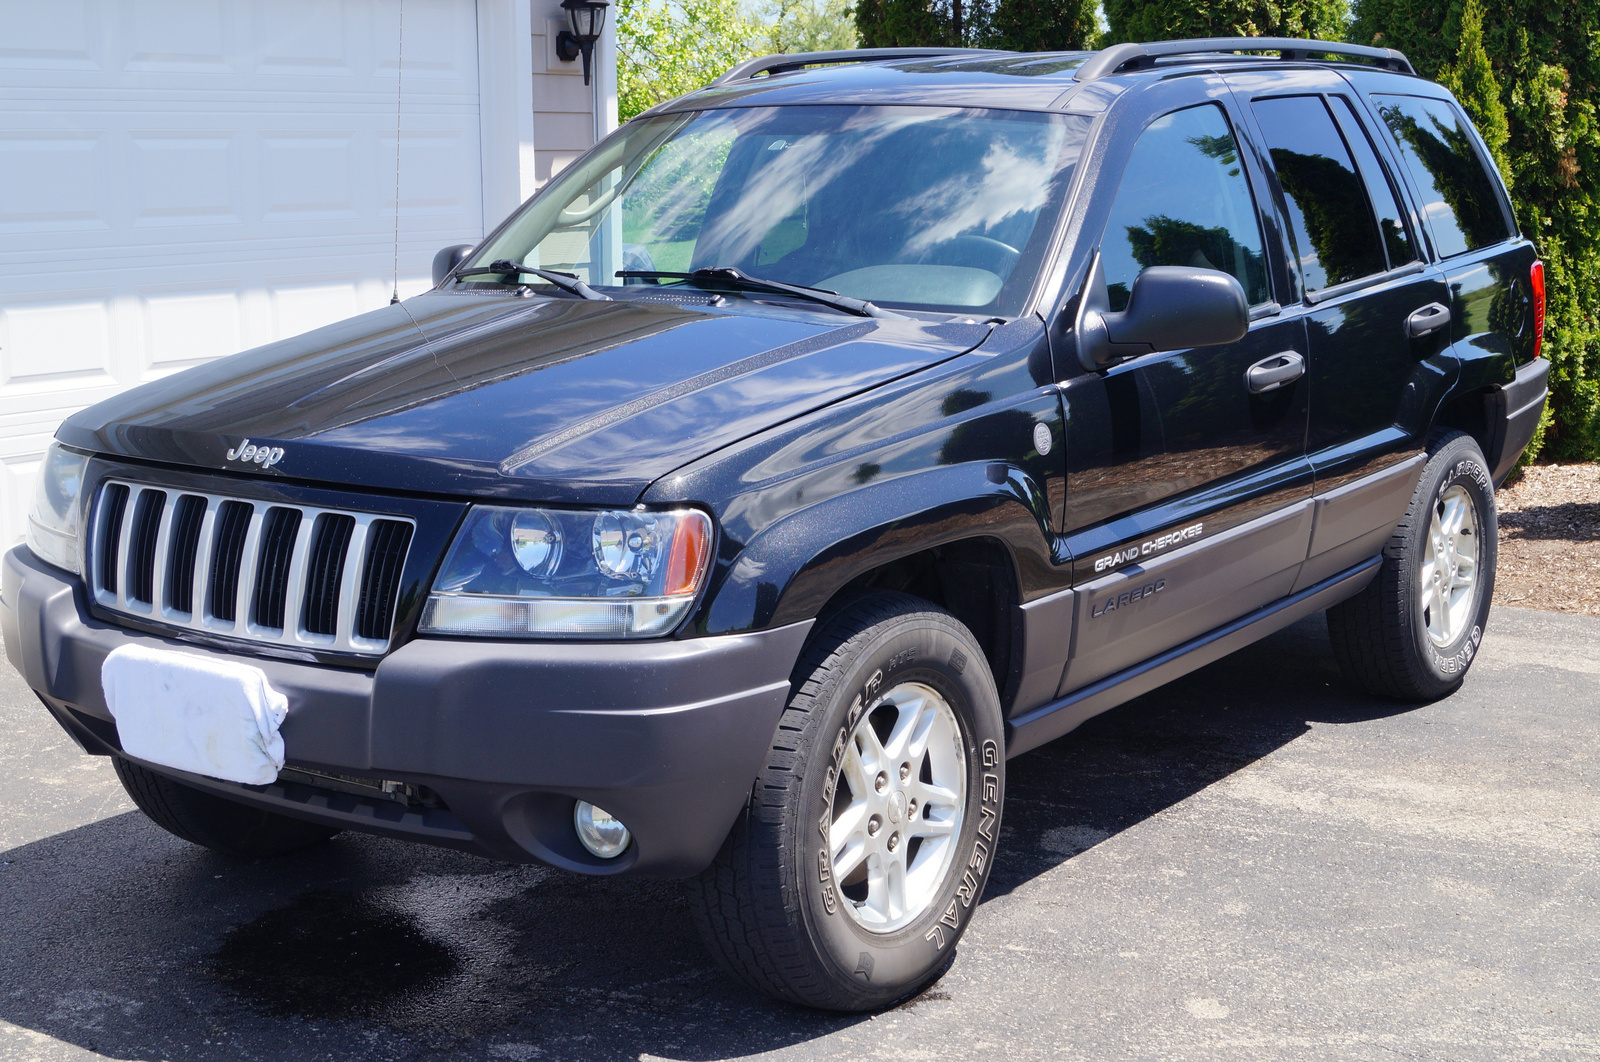 2004 jeep grand cherokee pictures cargurus. Cars Review. Best American Auto & Cars Review